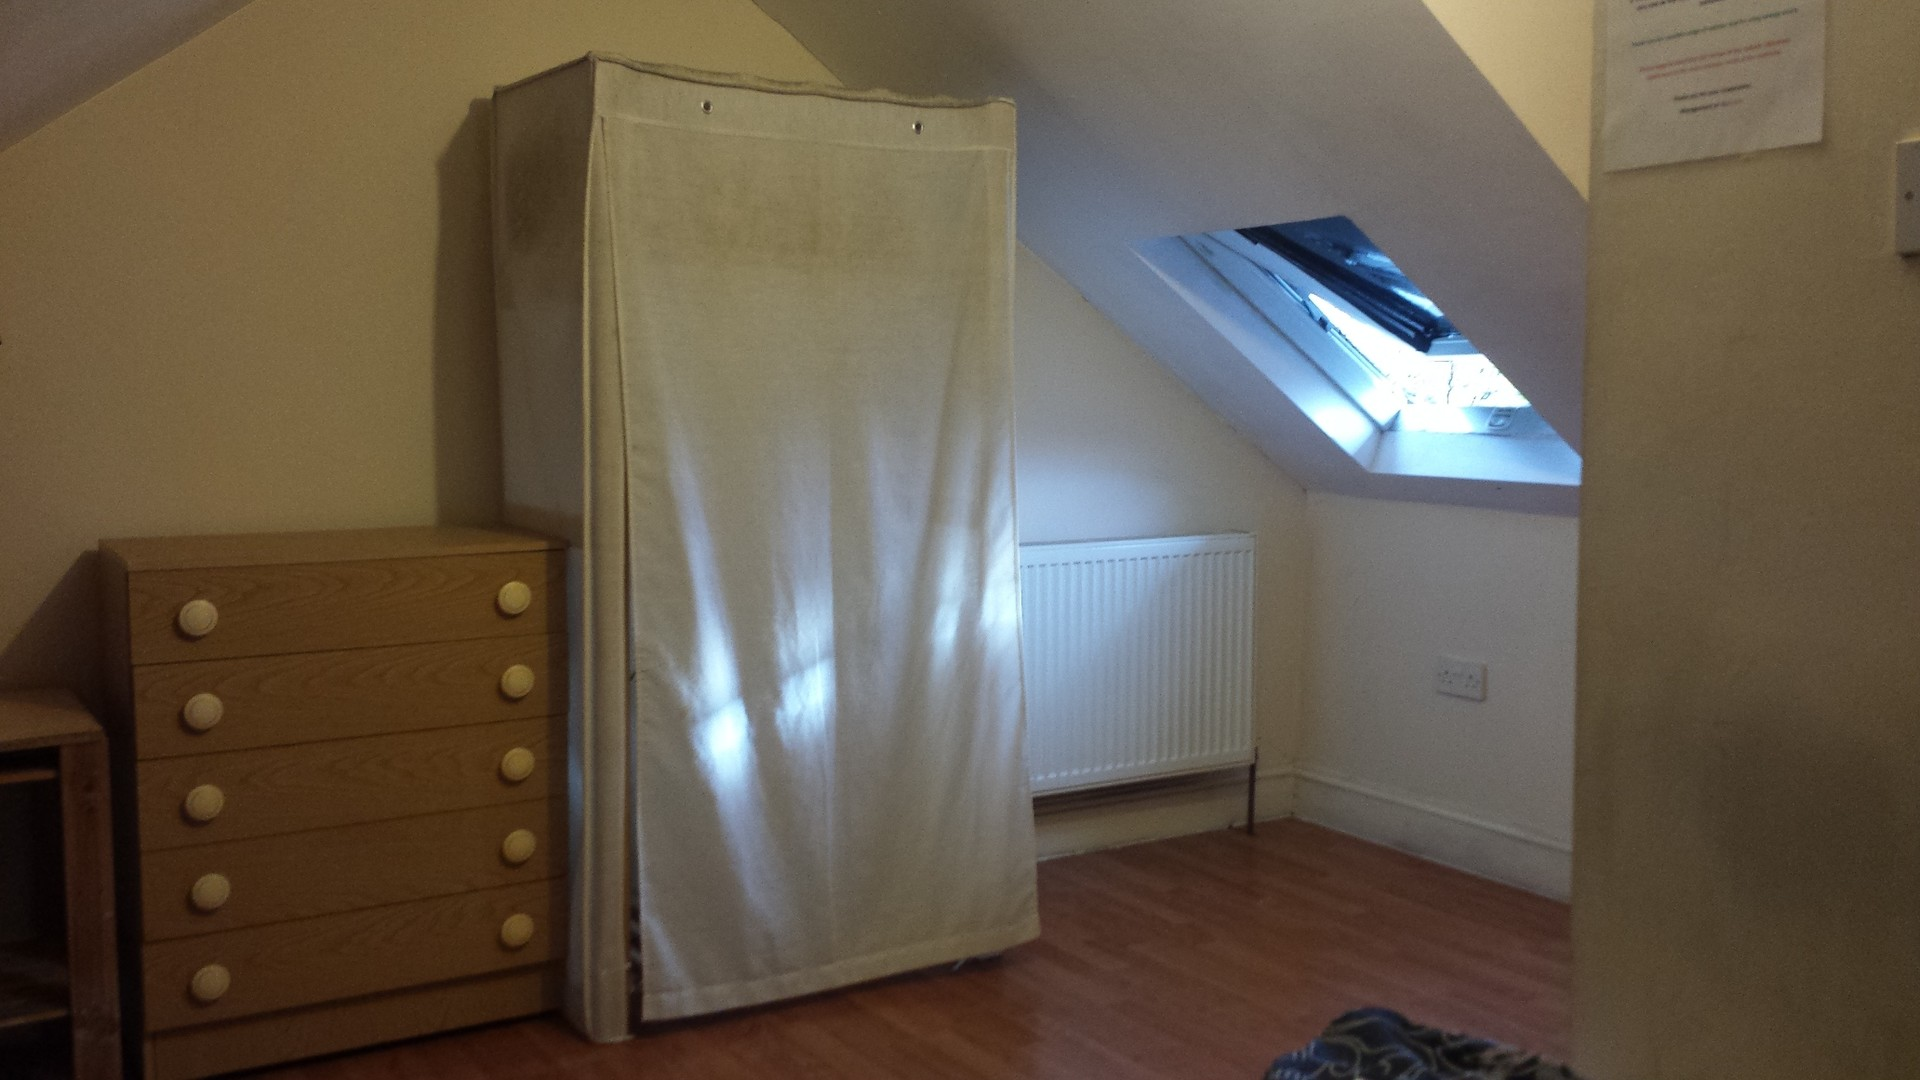 Ensuite double room for one person to rent in Leyton, all bills